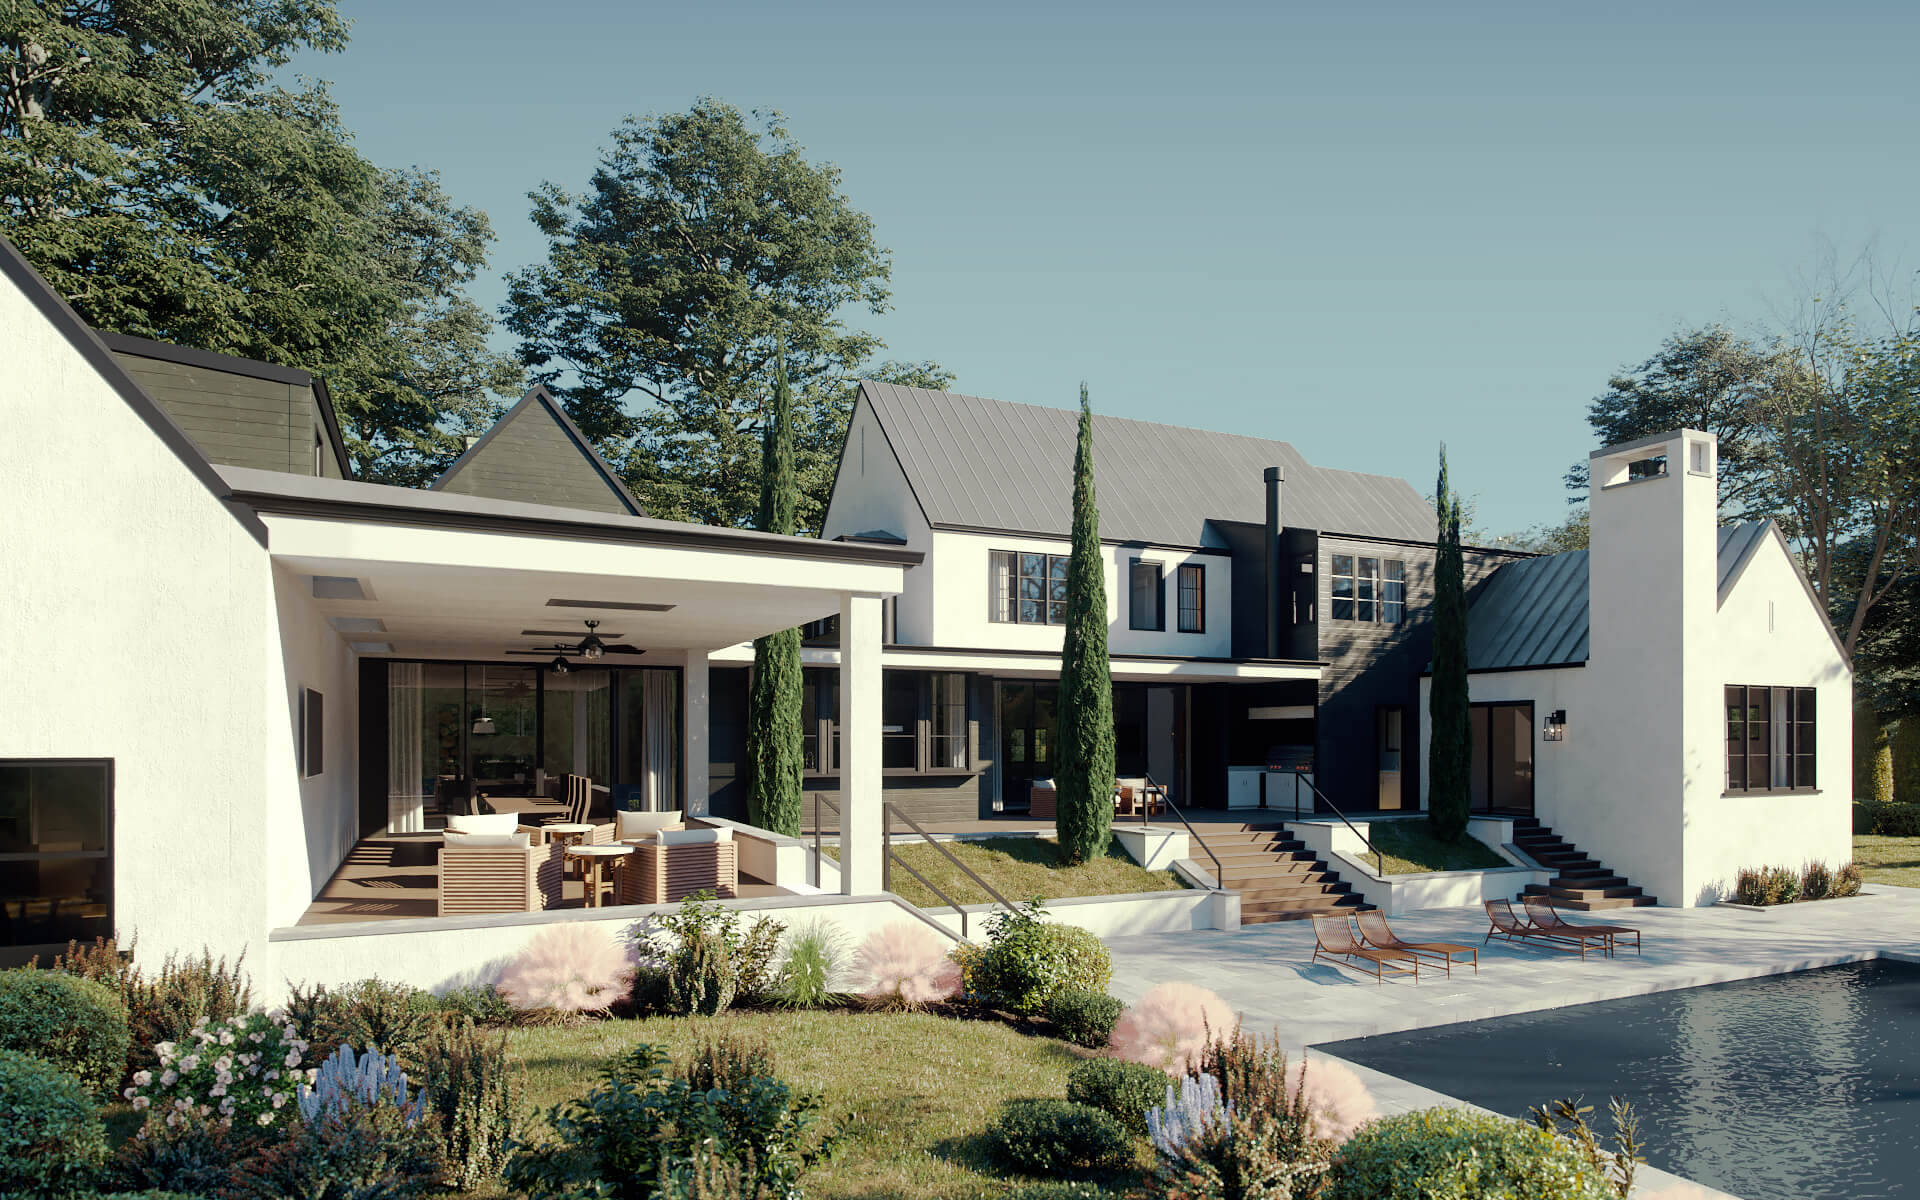 Exterior 3D Rendering Of a House With Pool